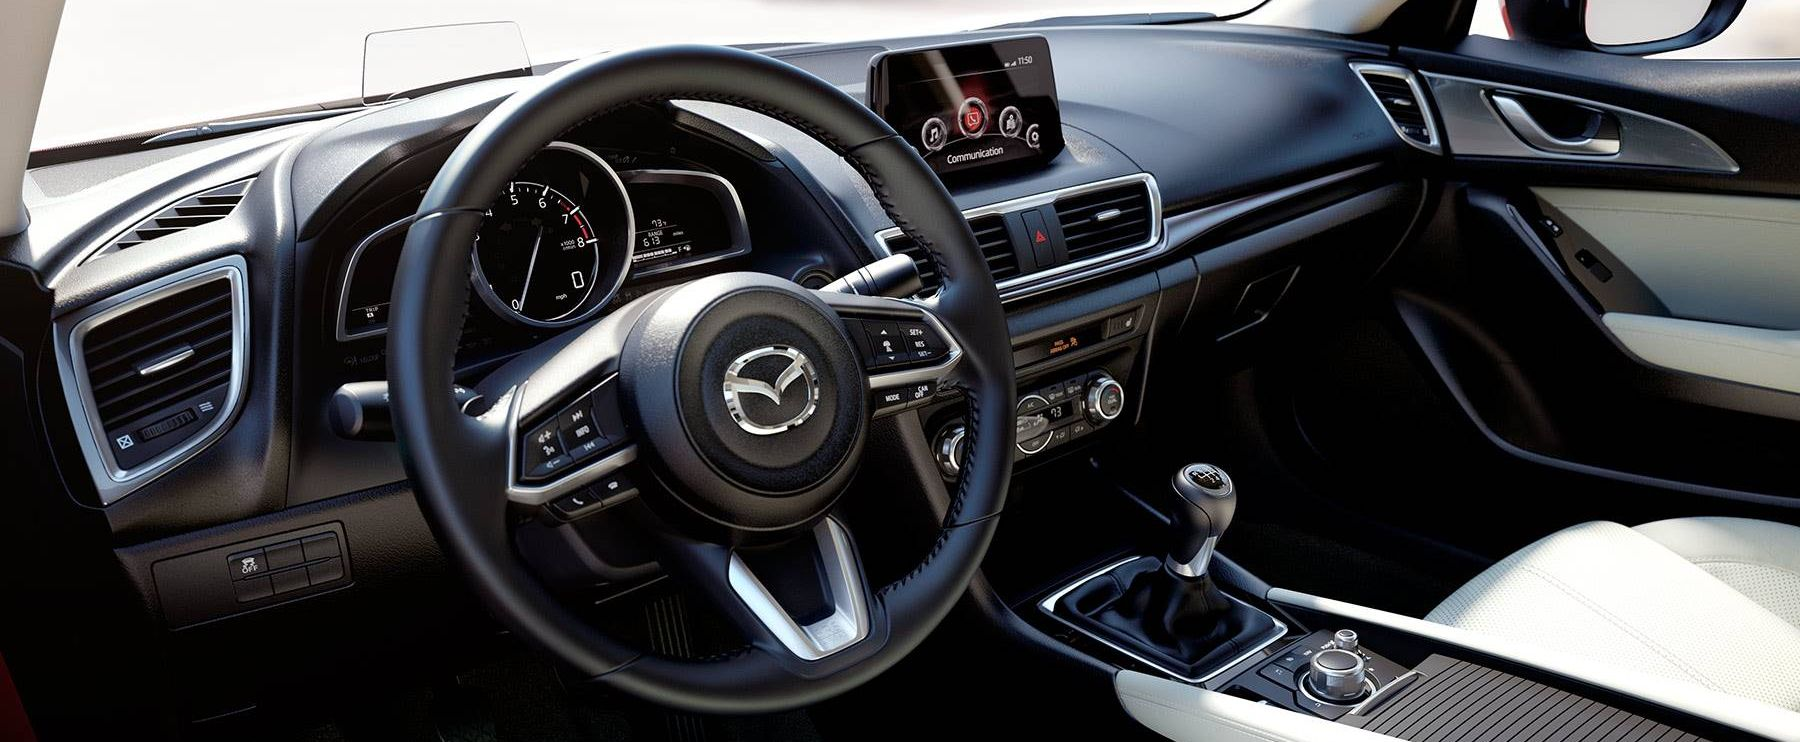 Engaging Interior of the 2018 Mazda3